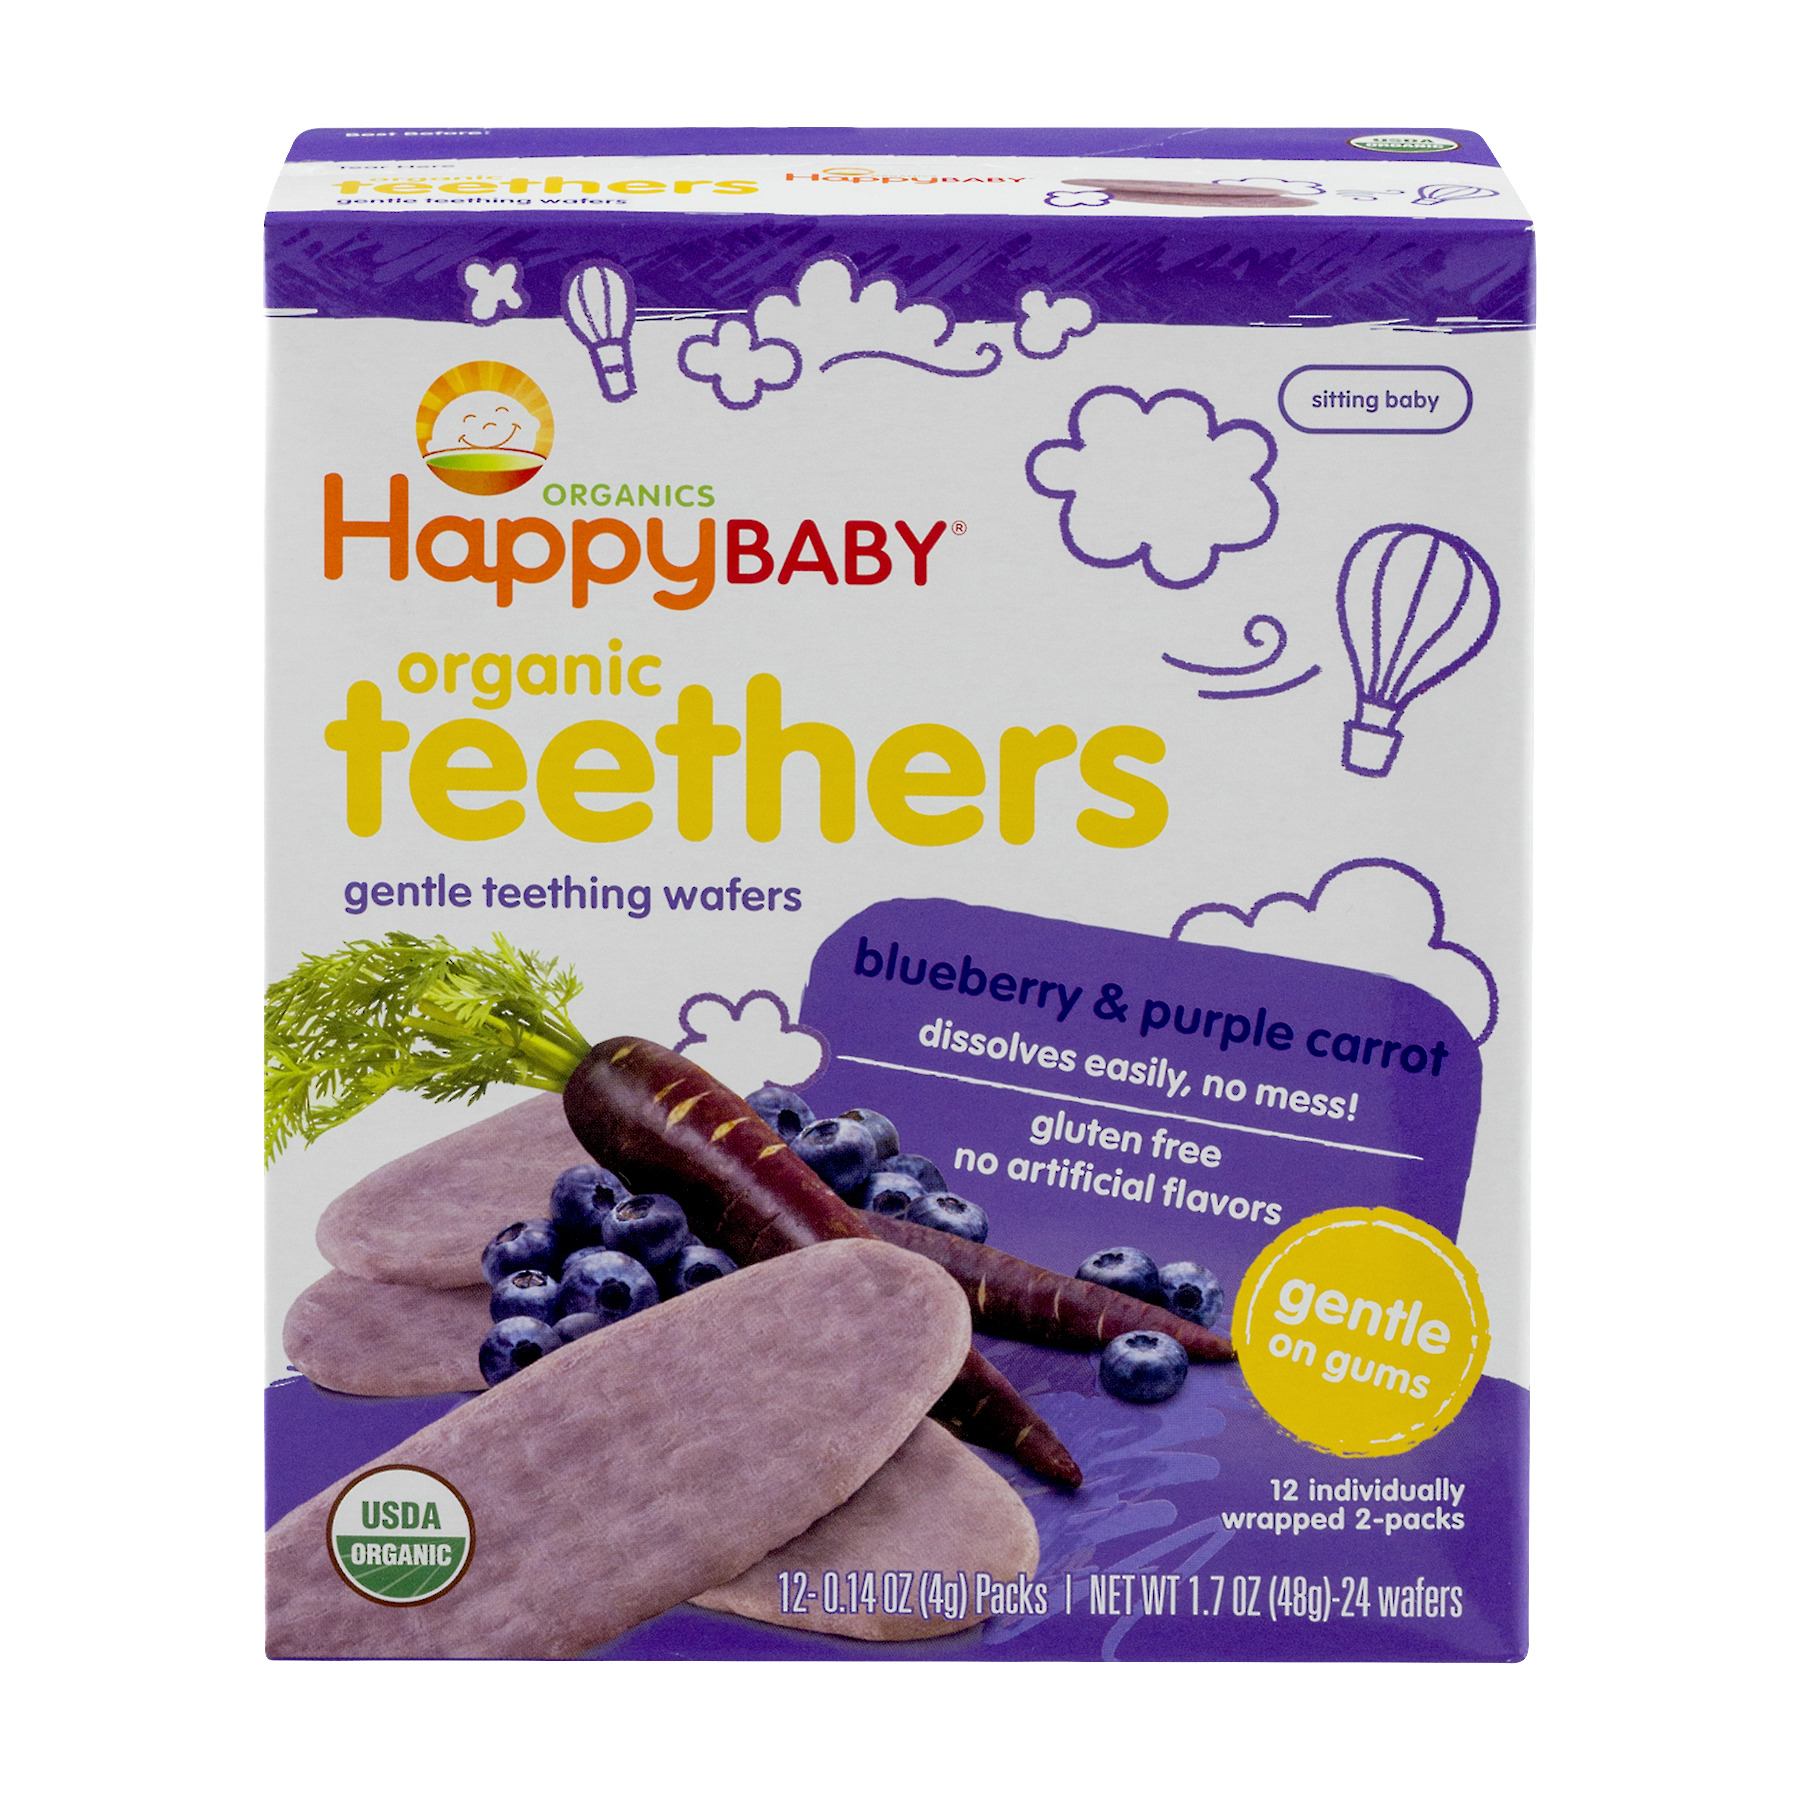 HappyBaby Organics Organic Teethers Blueberry & Purple Carrot - 12 PK, 0.14 OZ